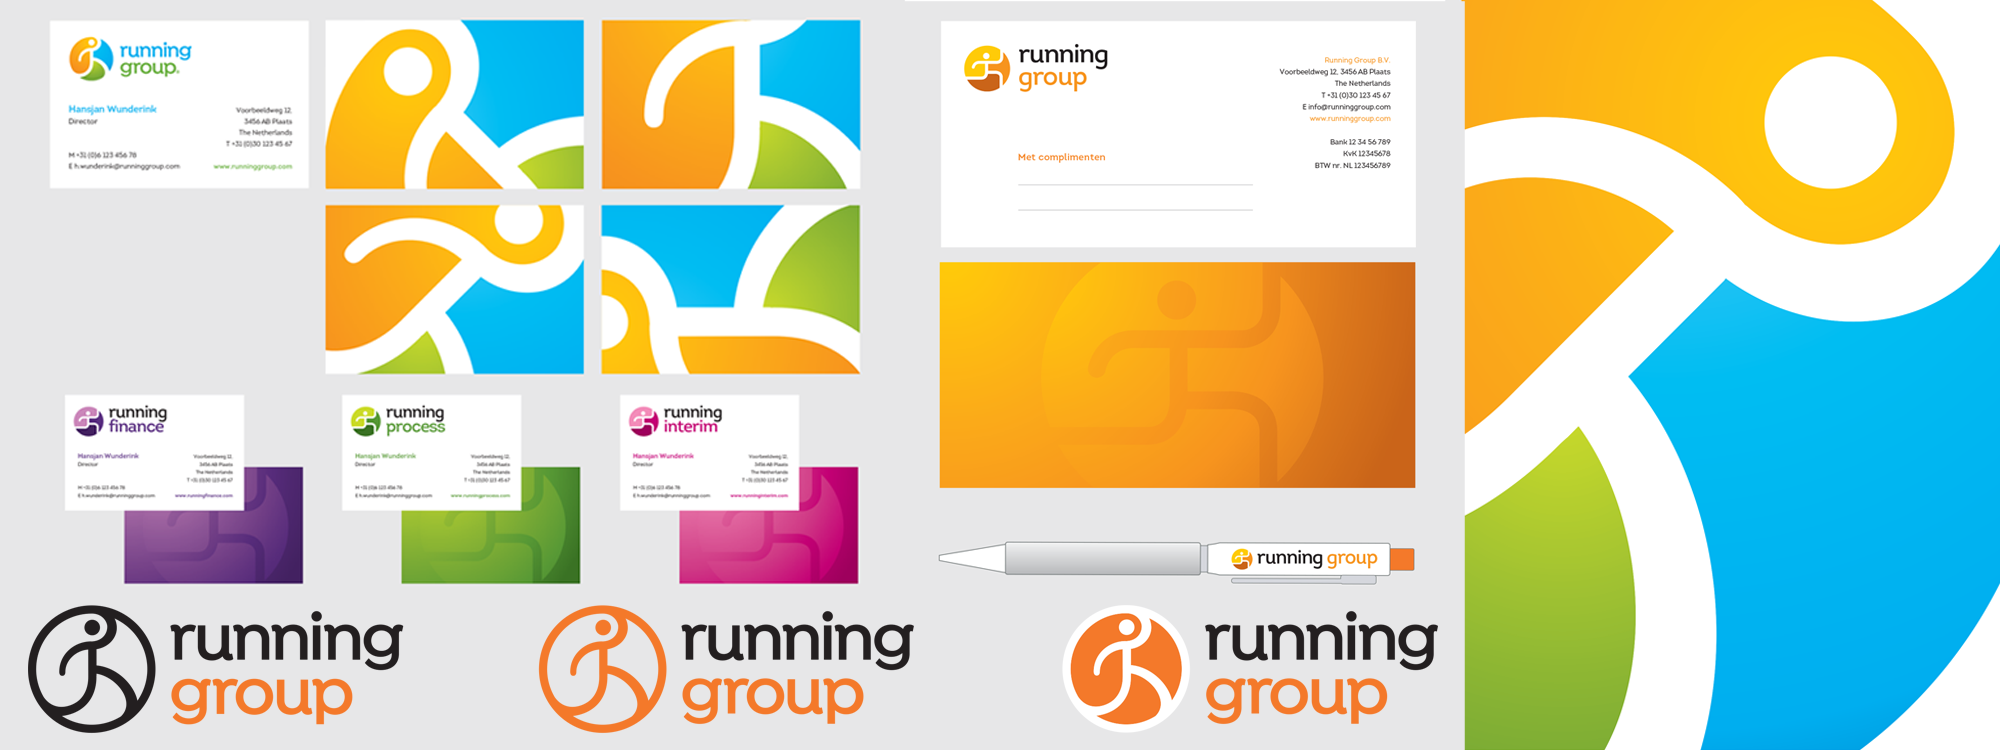 running-group